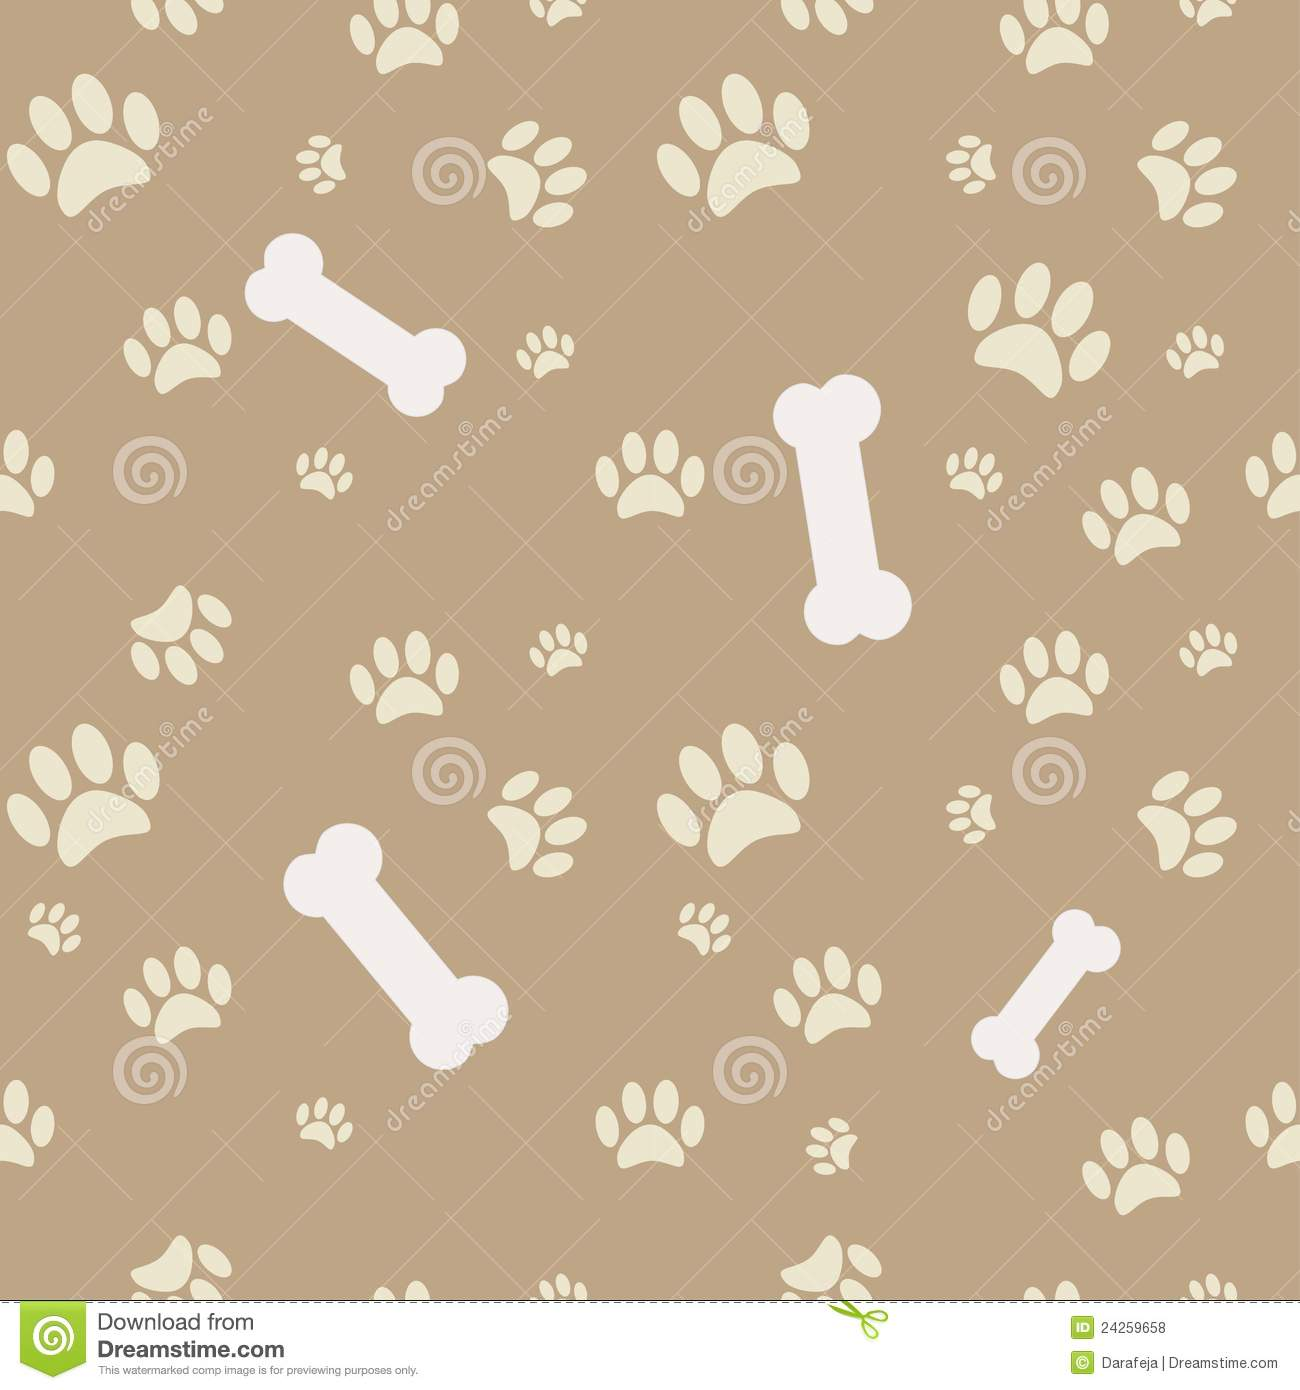 Background with dog paw print and bone